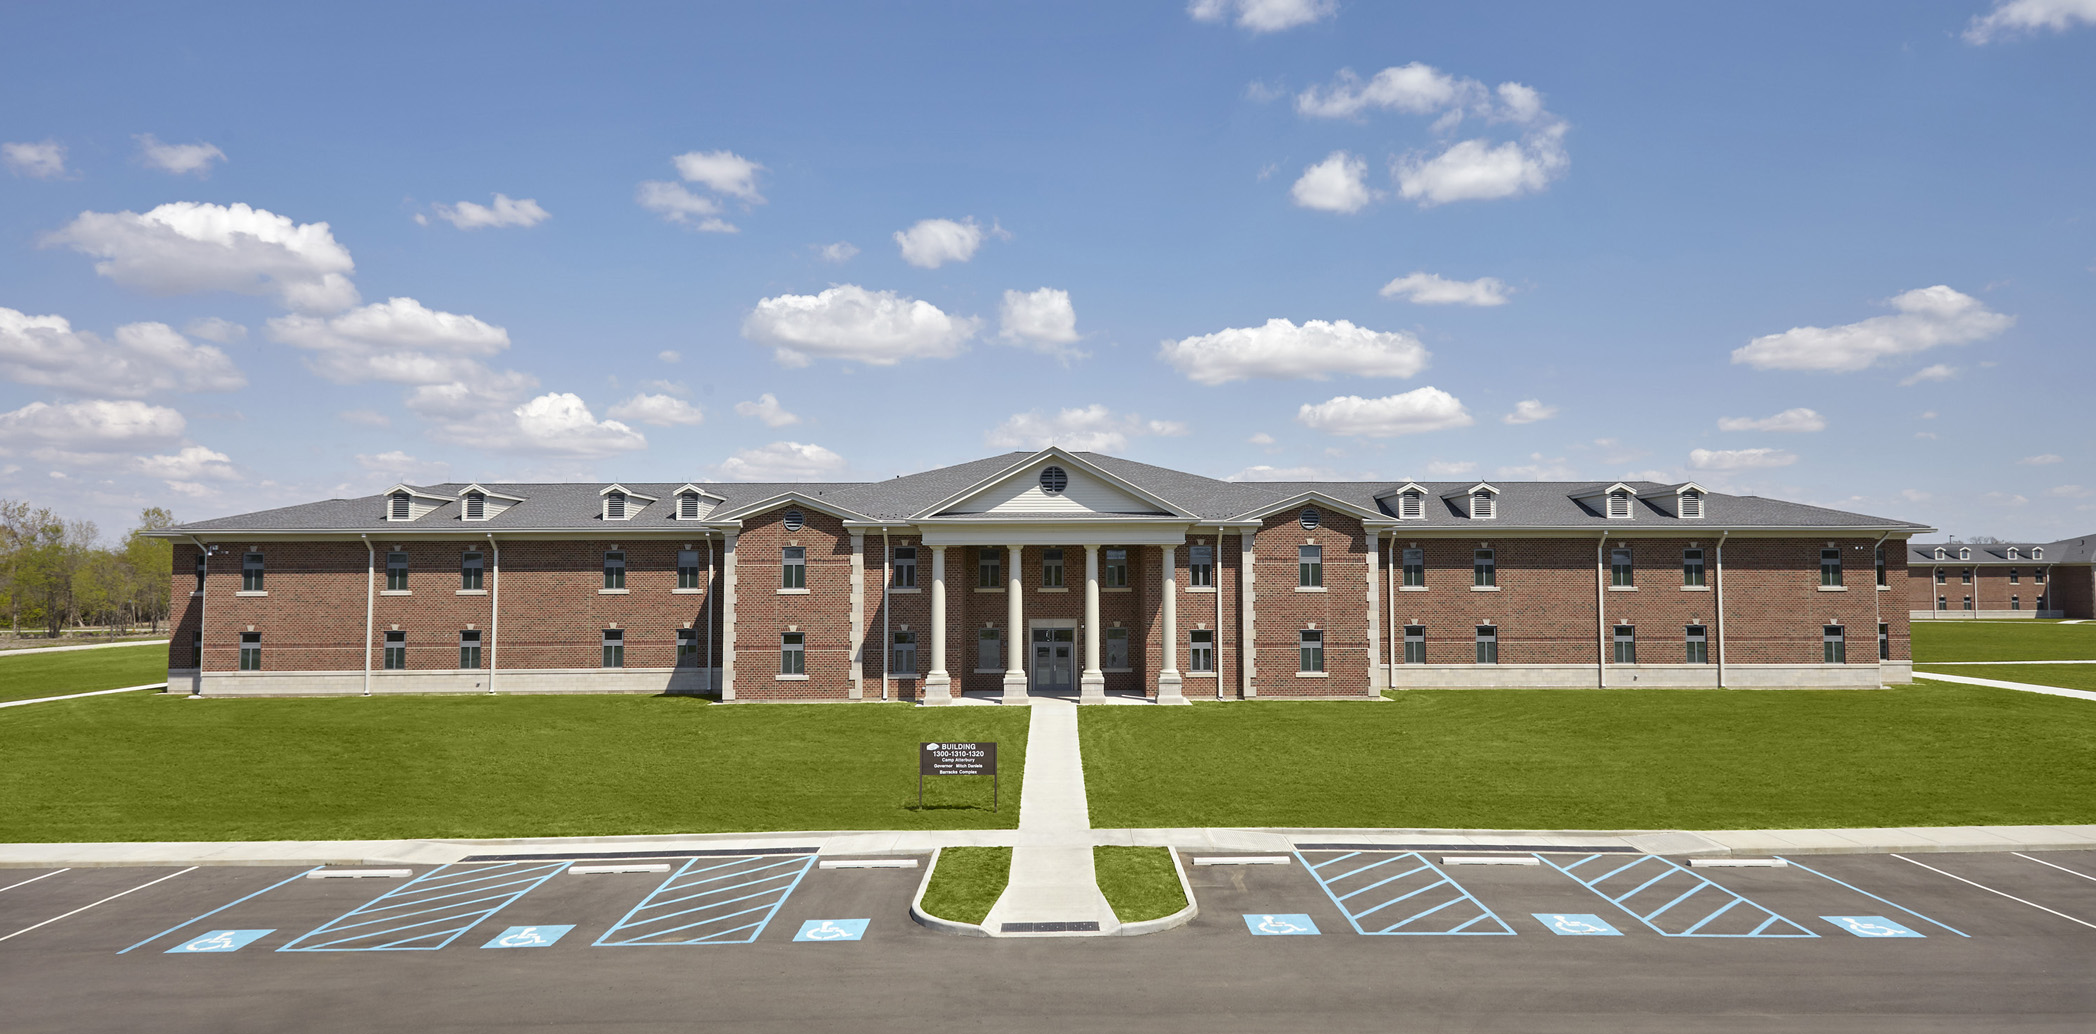 Indiana National Guard Mitch Daniels Barracks Complex